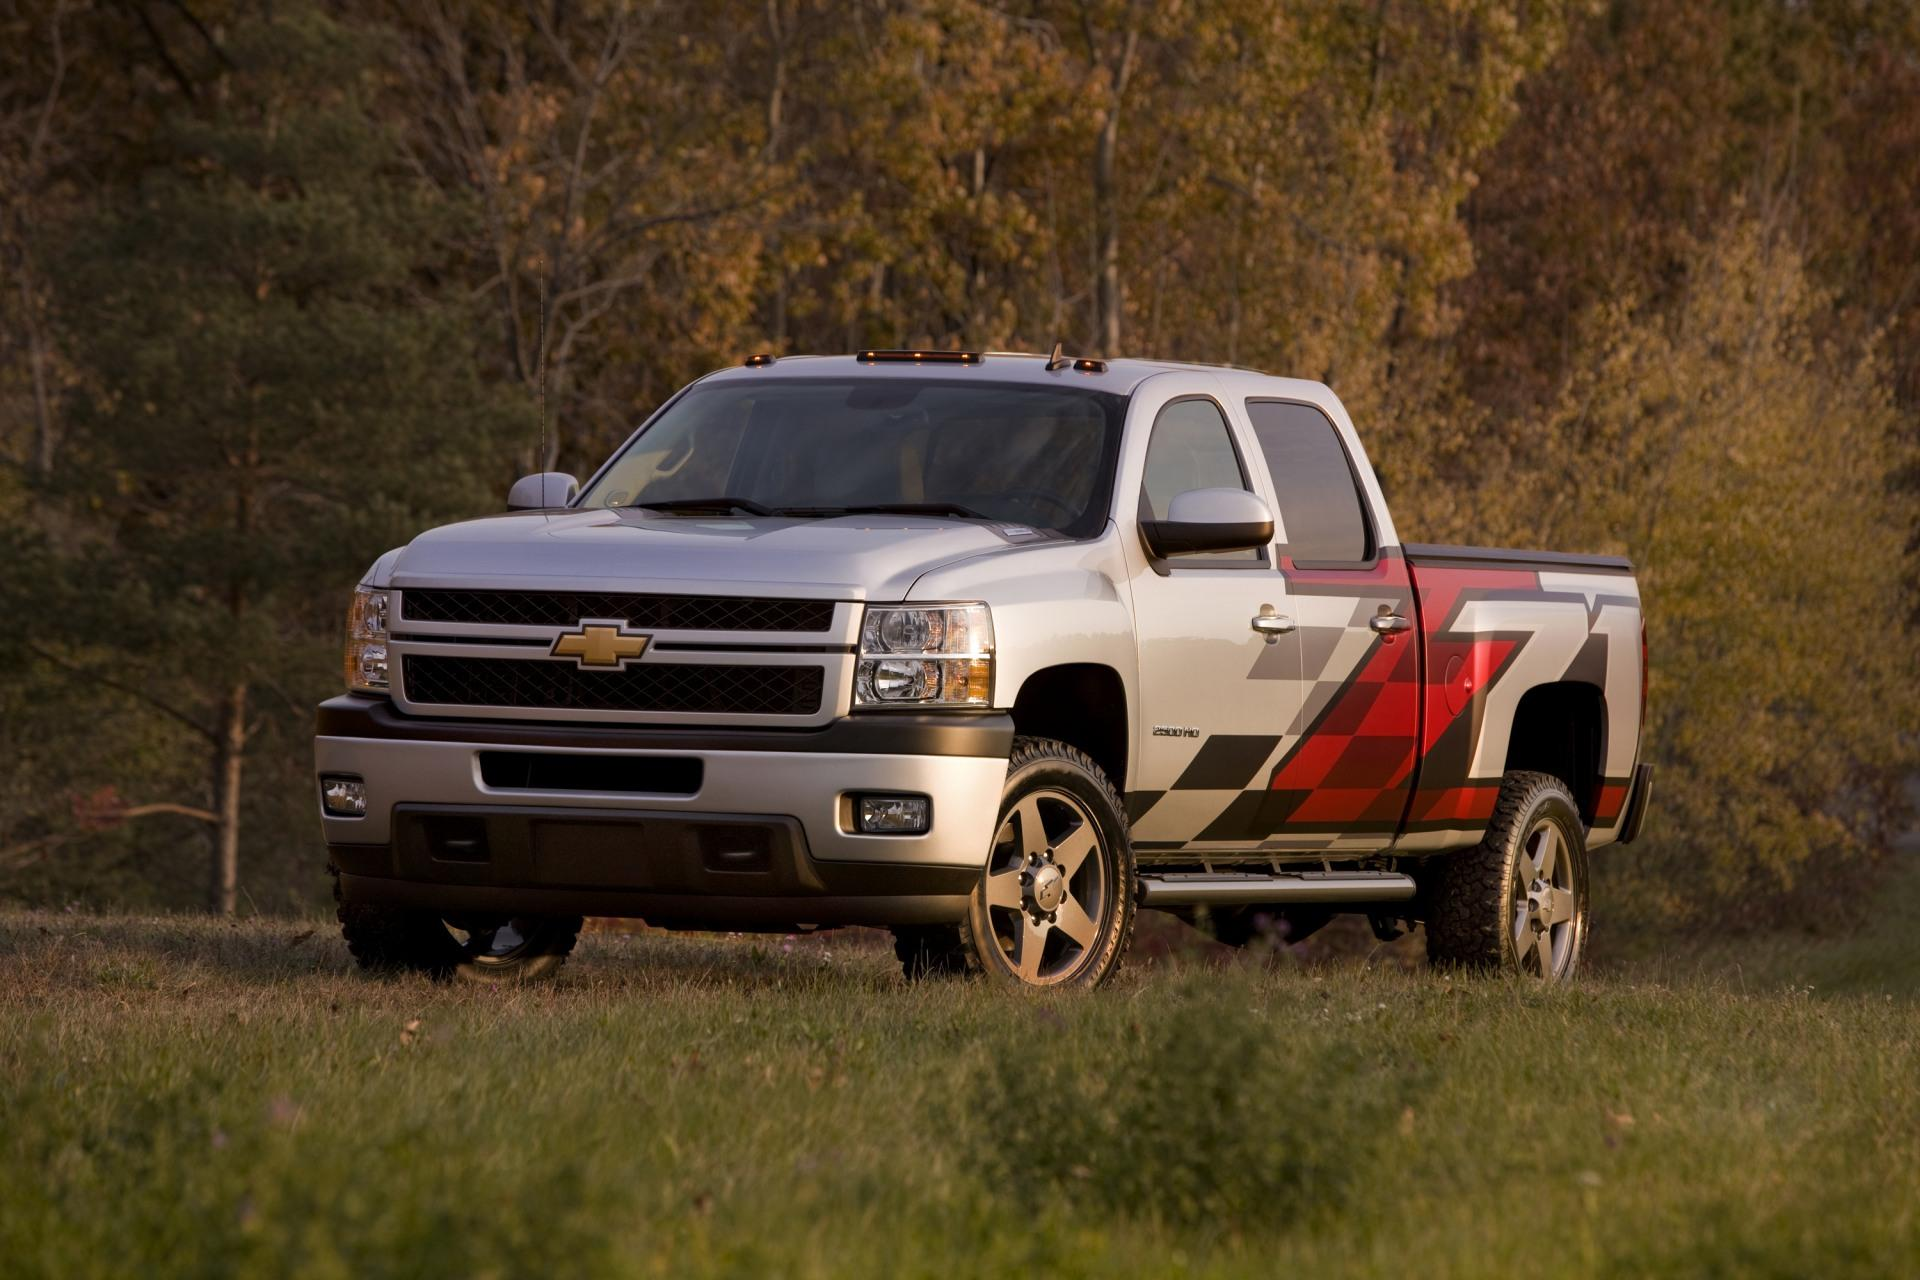 2011 Chevrolet Silverado 2500 Hd Z71 News And Information